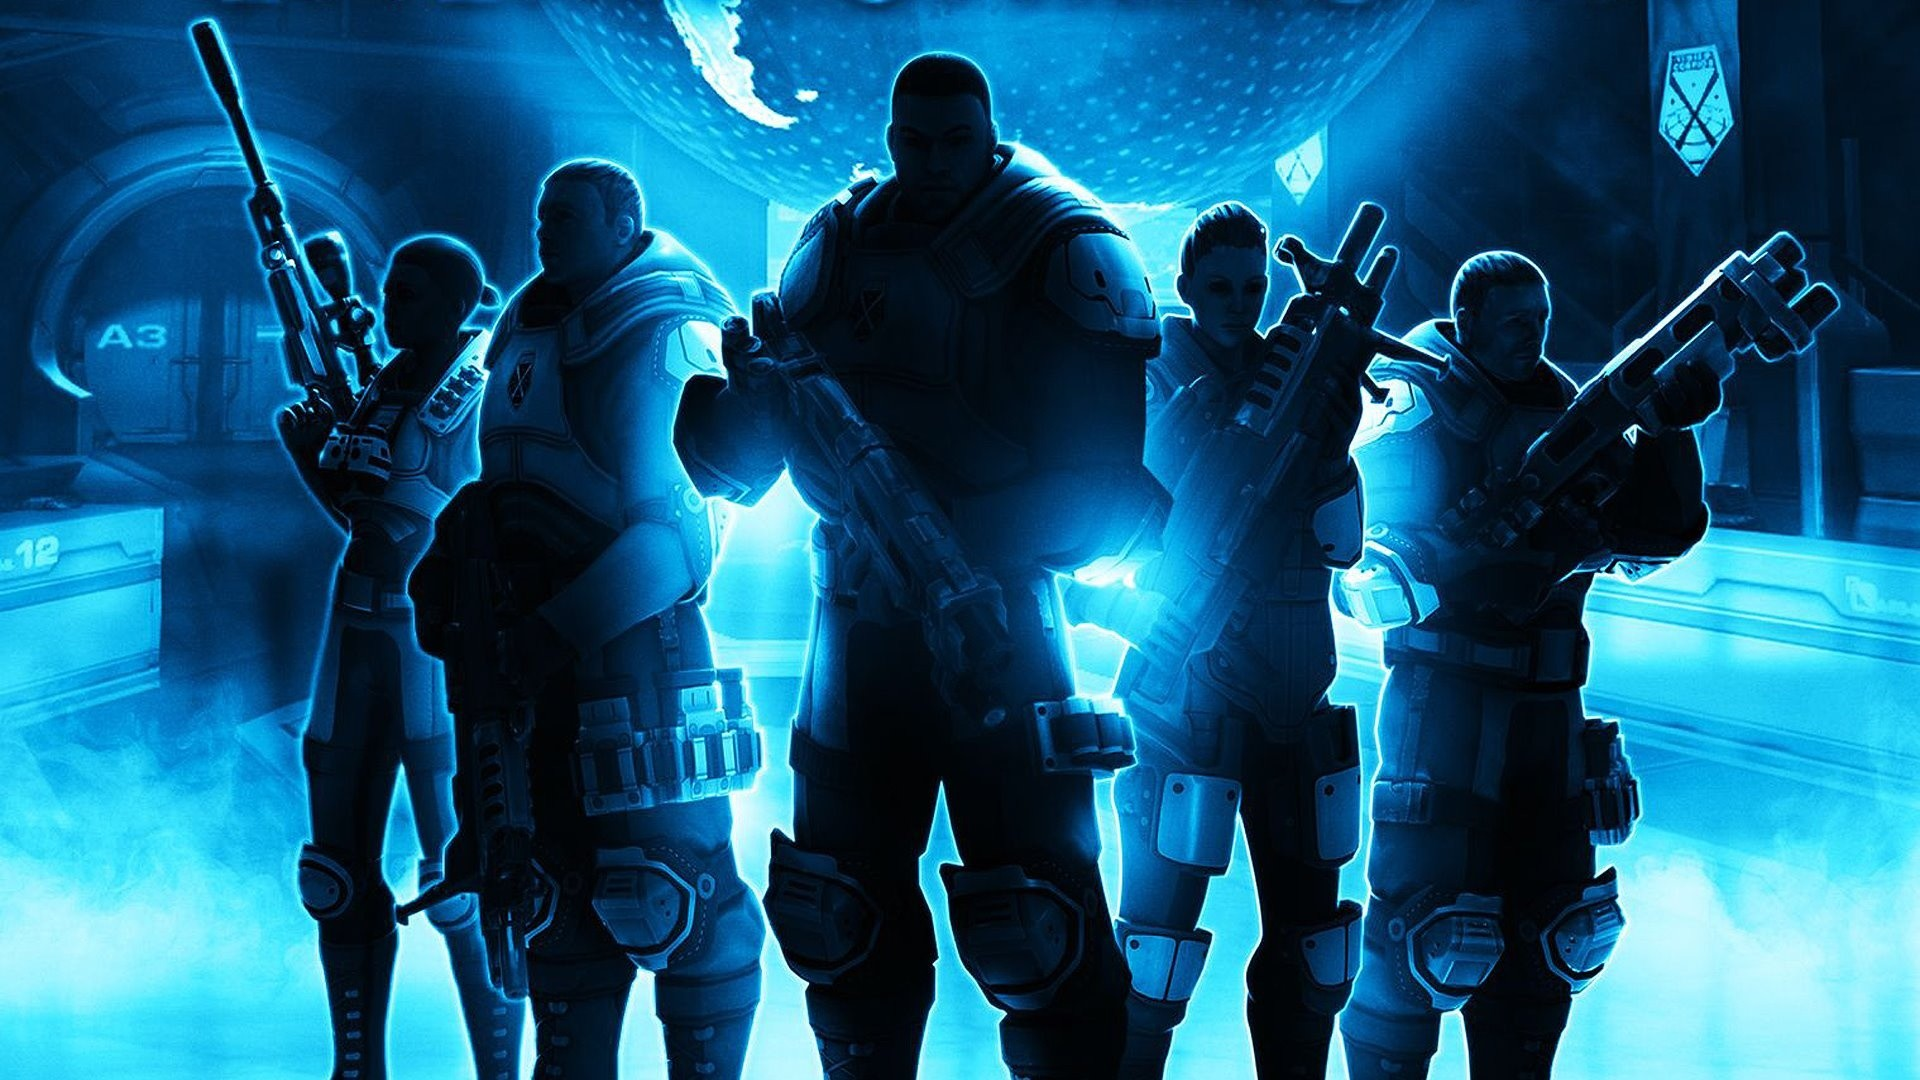 1920x1080 Download now full hd wallpaper xcom enemy unknown squad figure art ...